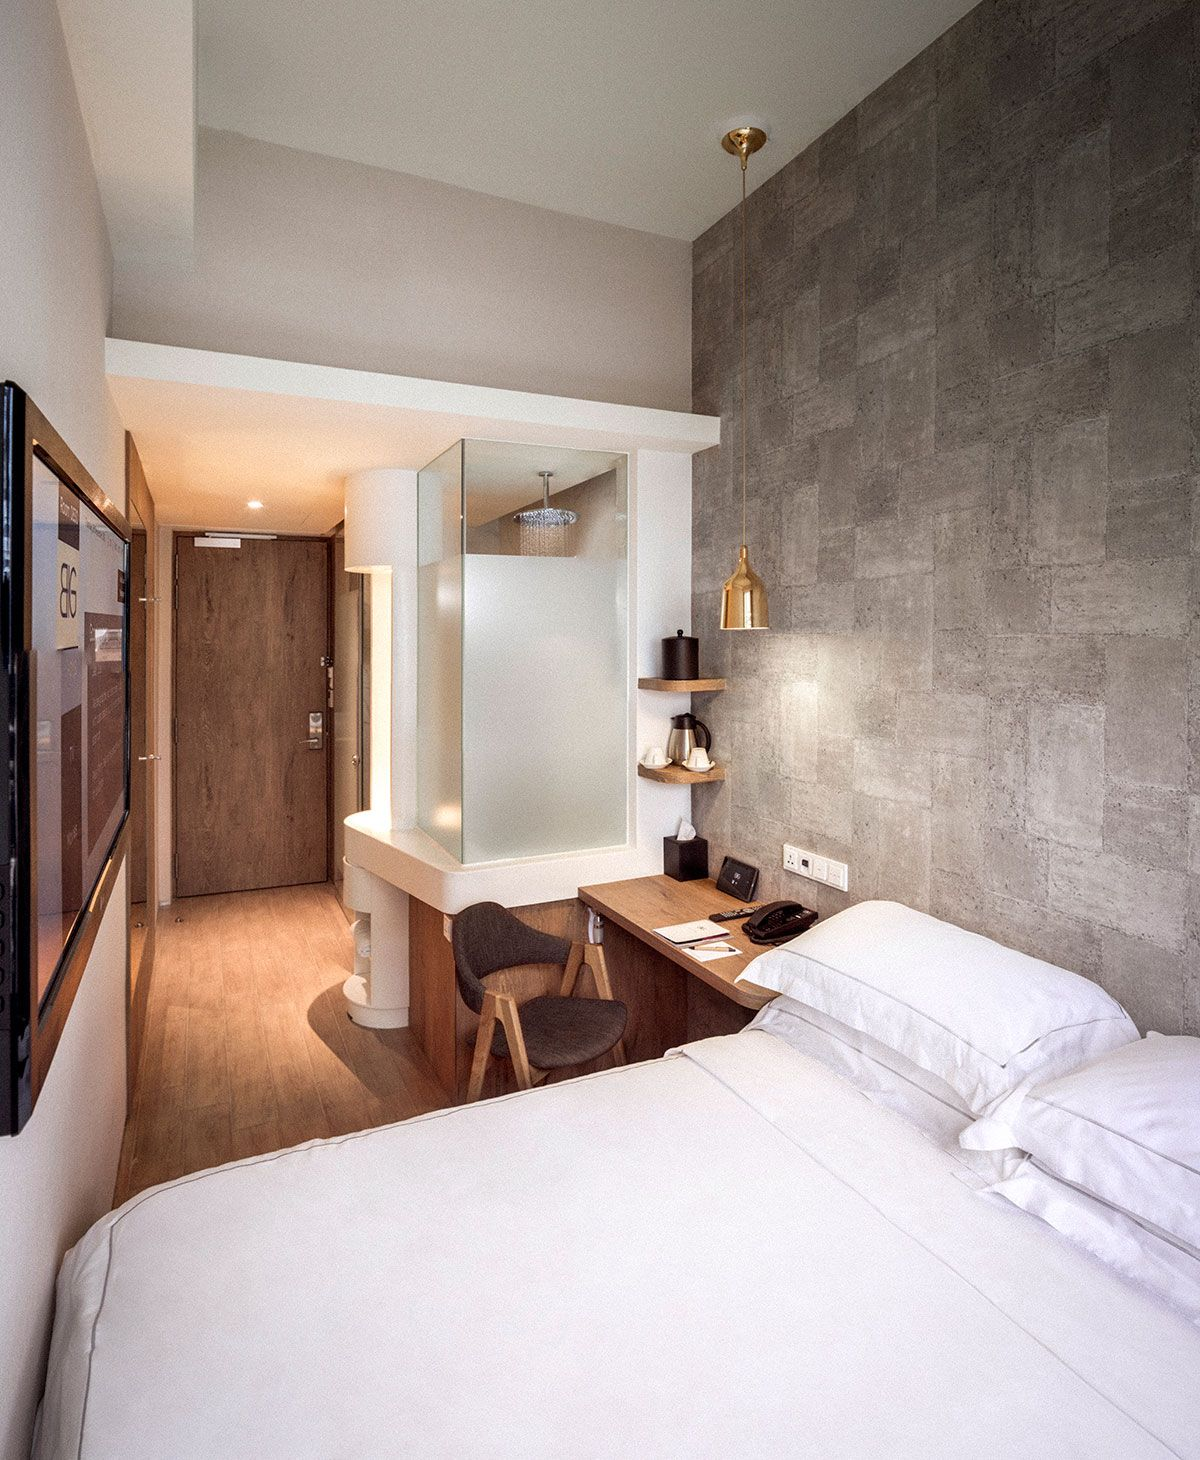 Singapore Big Hotel Interior Neutral And Cool Tones Love The